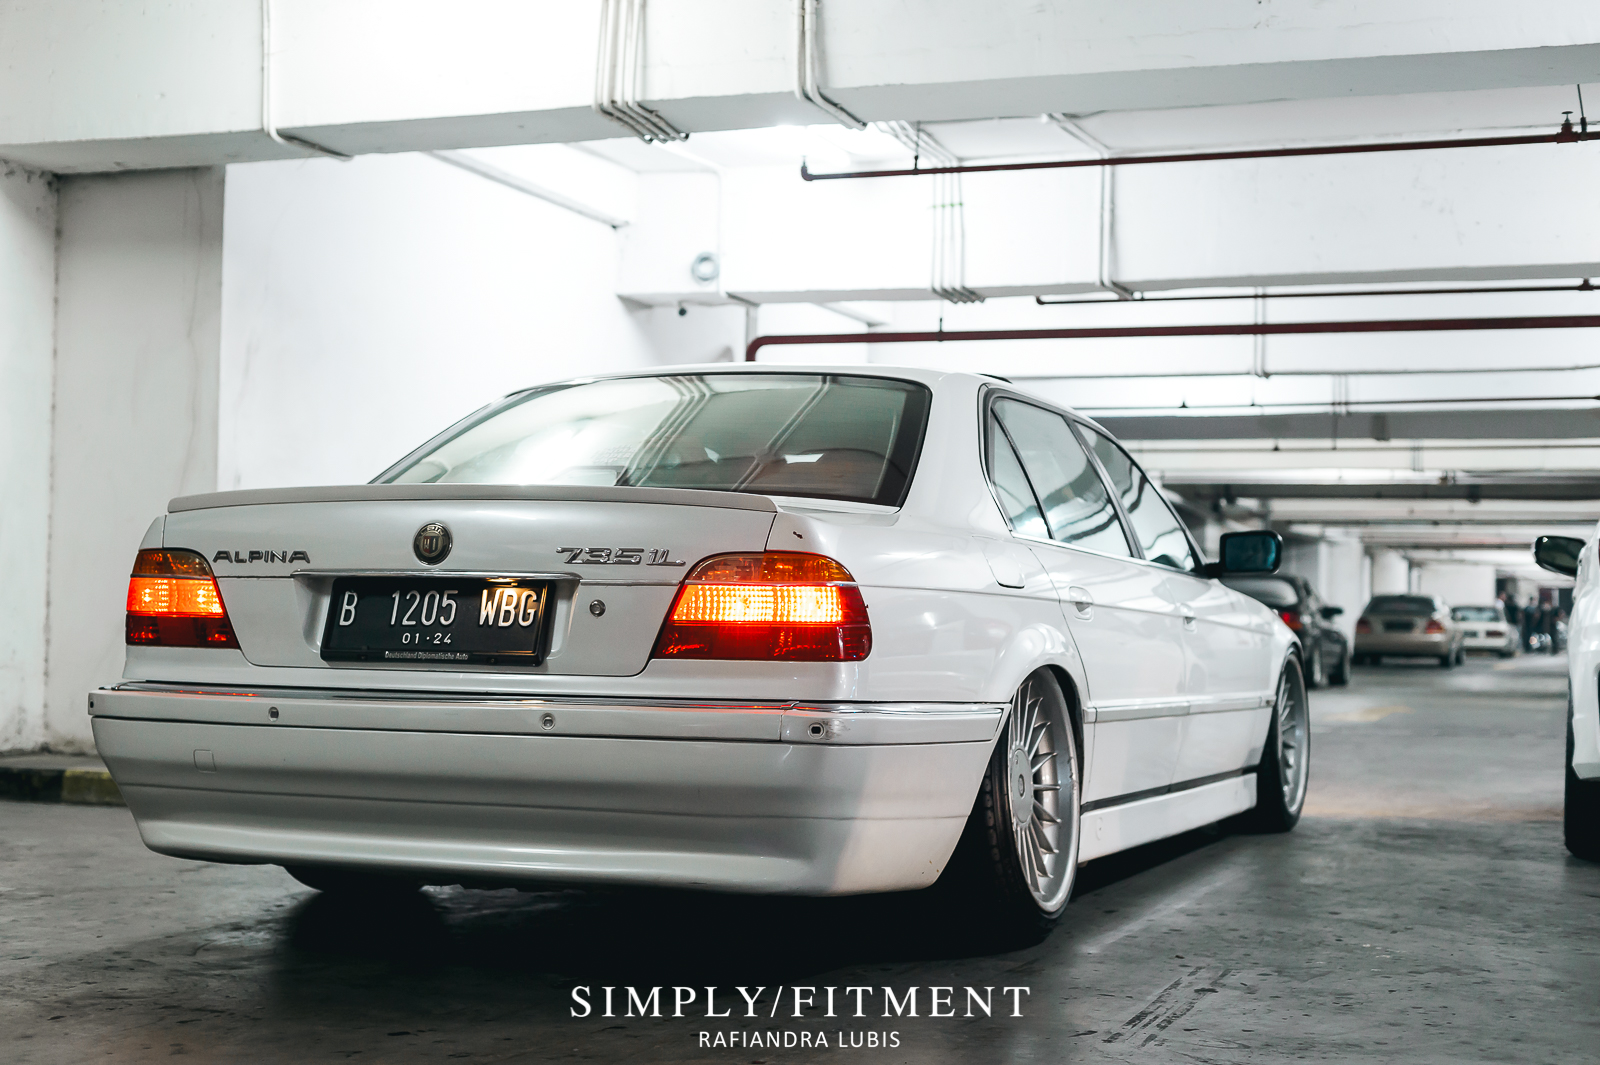 LOWFITMENTDAY 2